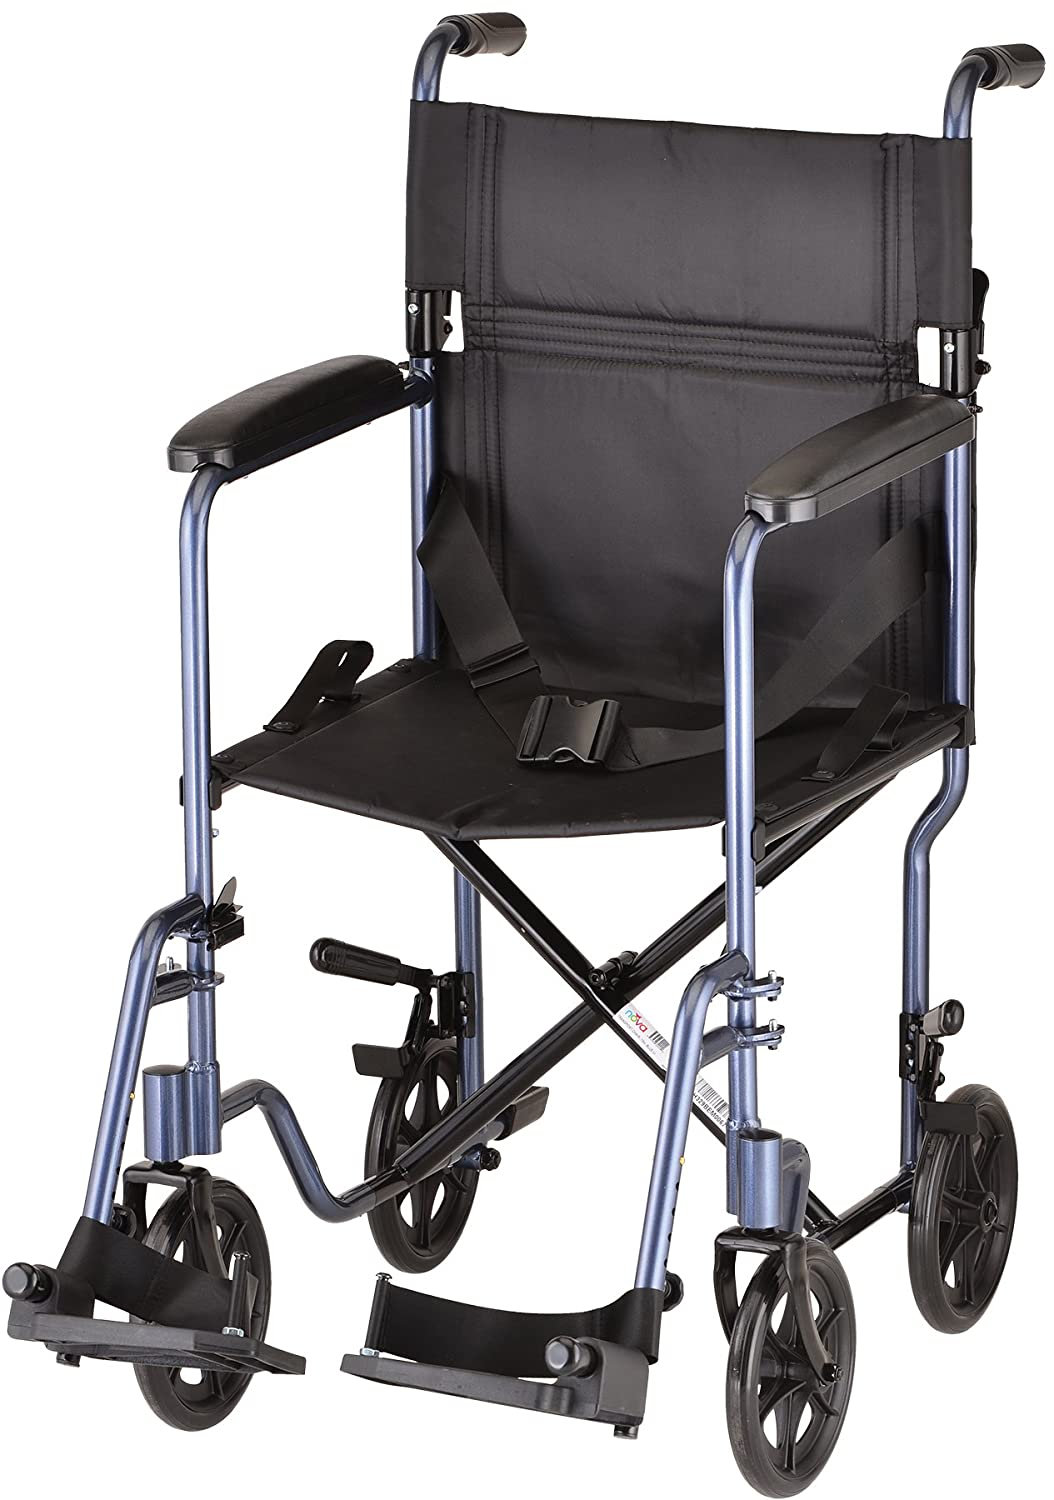 c large chairs product medical lightweight store drive id black dash wheelchair image transport chair